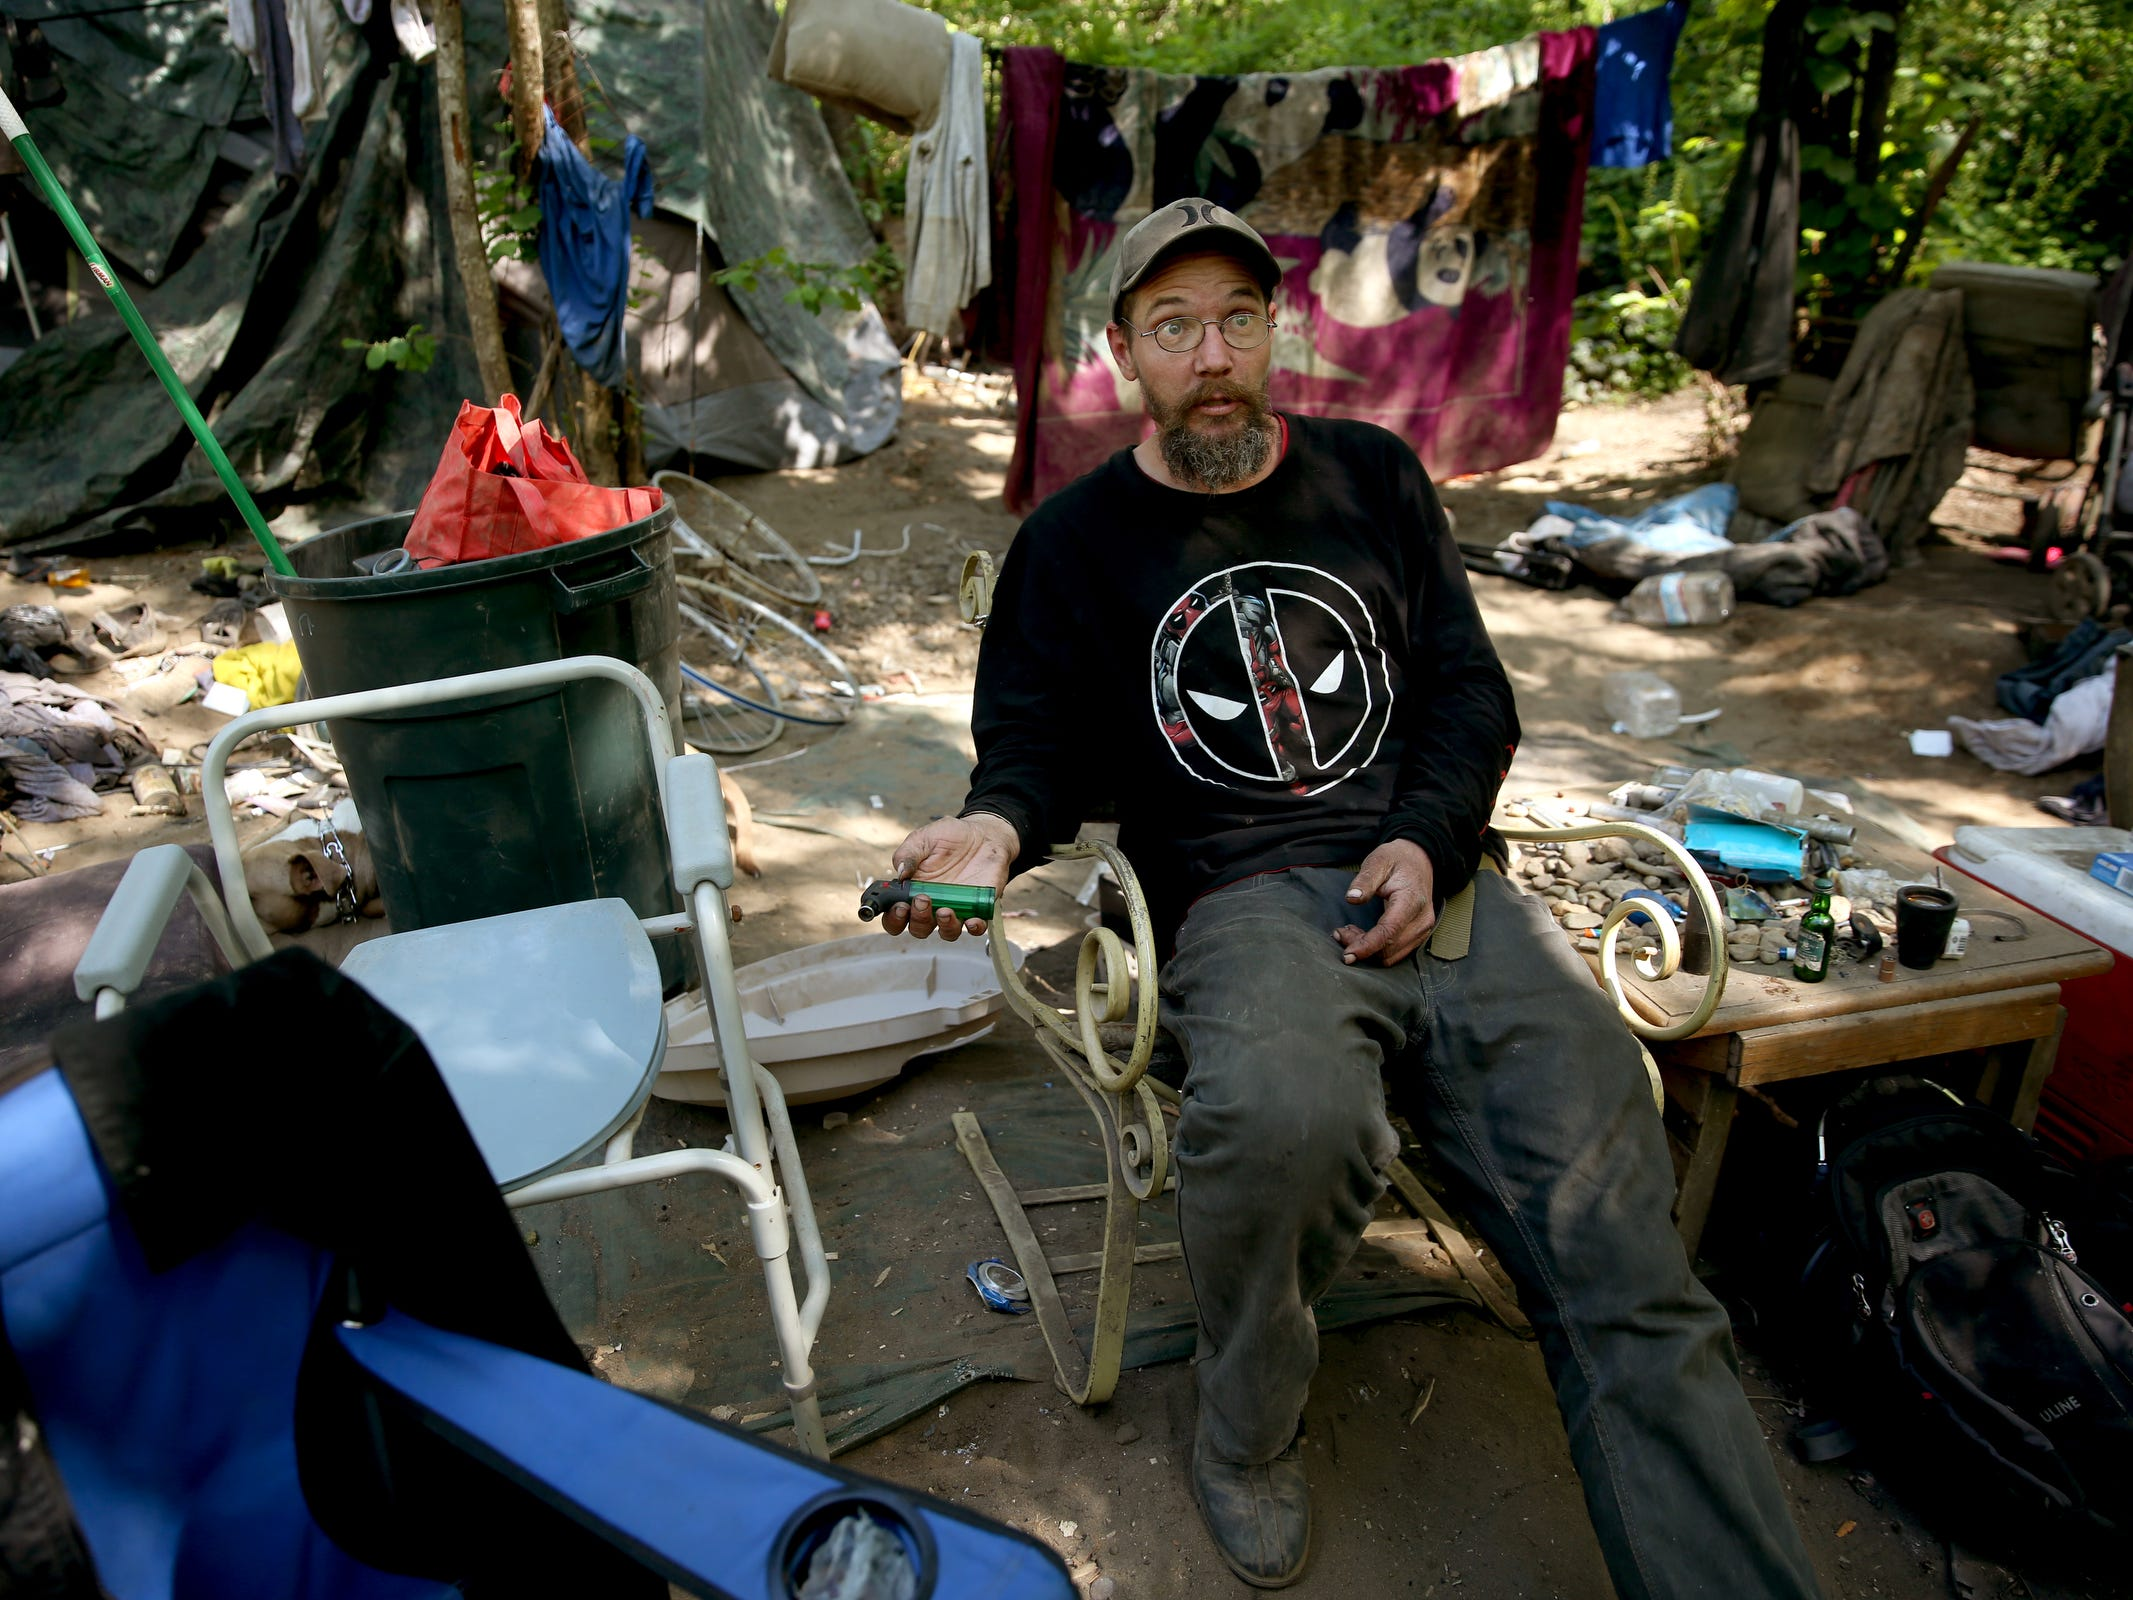 """Anthony Stevens hasn't seen a """"no trespassing"""" sign posted near his area in a homeless camp near Wallace Marine Park, so he plans to stay. Signs were posted throughout the camp recently stating personal property must be removed or it will be taken by the landowner and its designated agent starting May 7. Photographed in West Salem on May 6, 2019."""